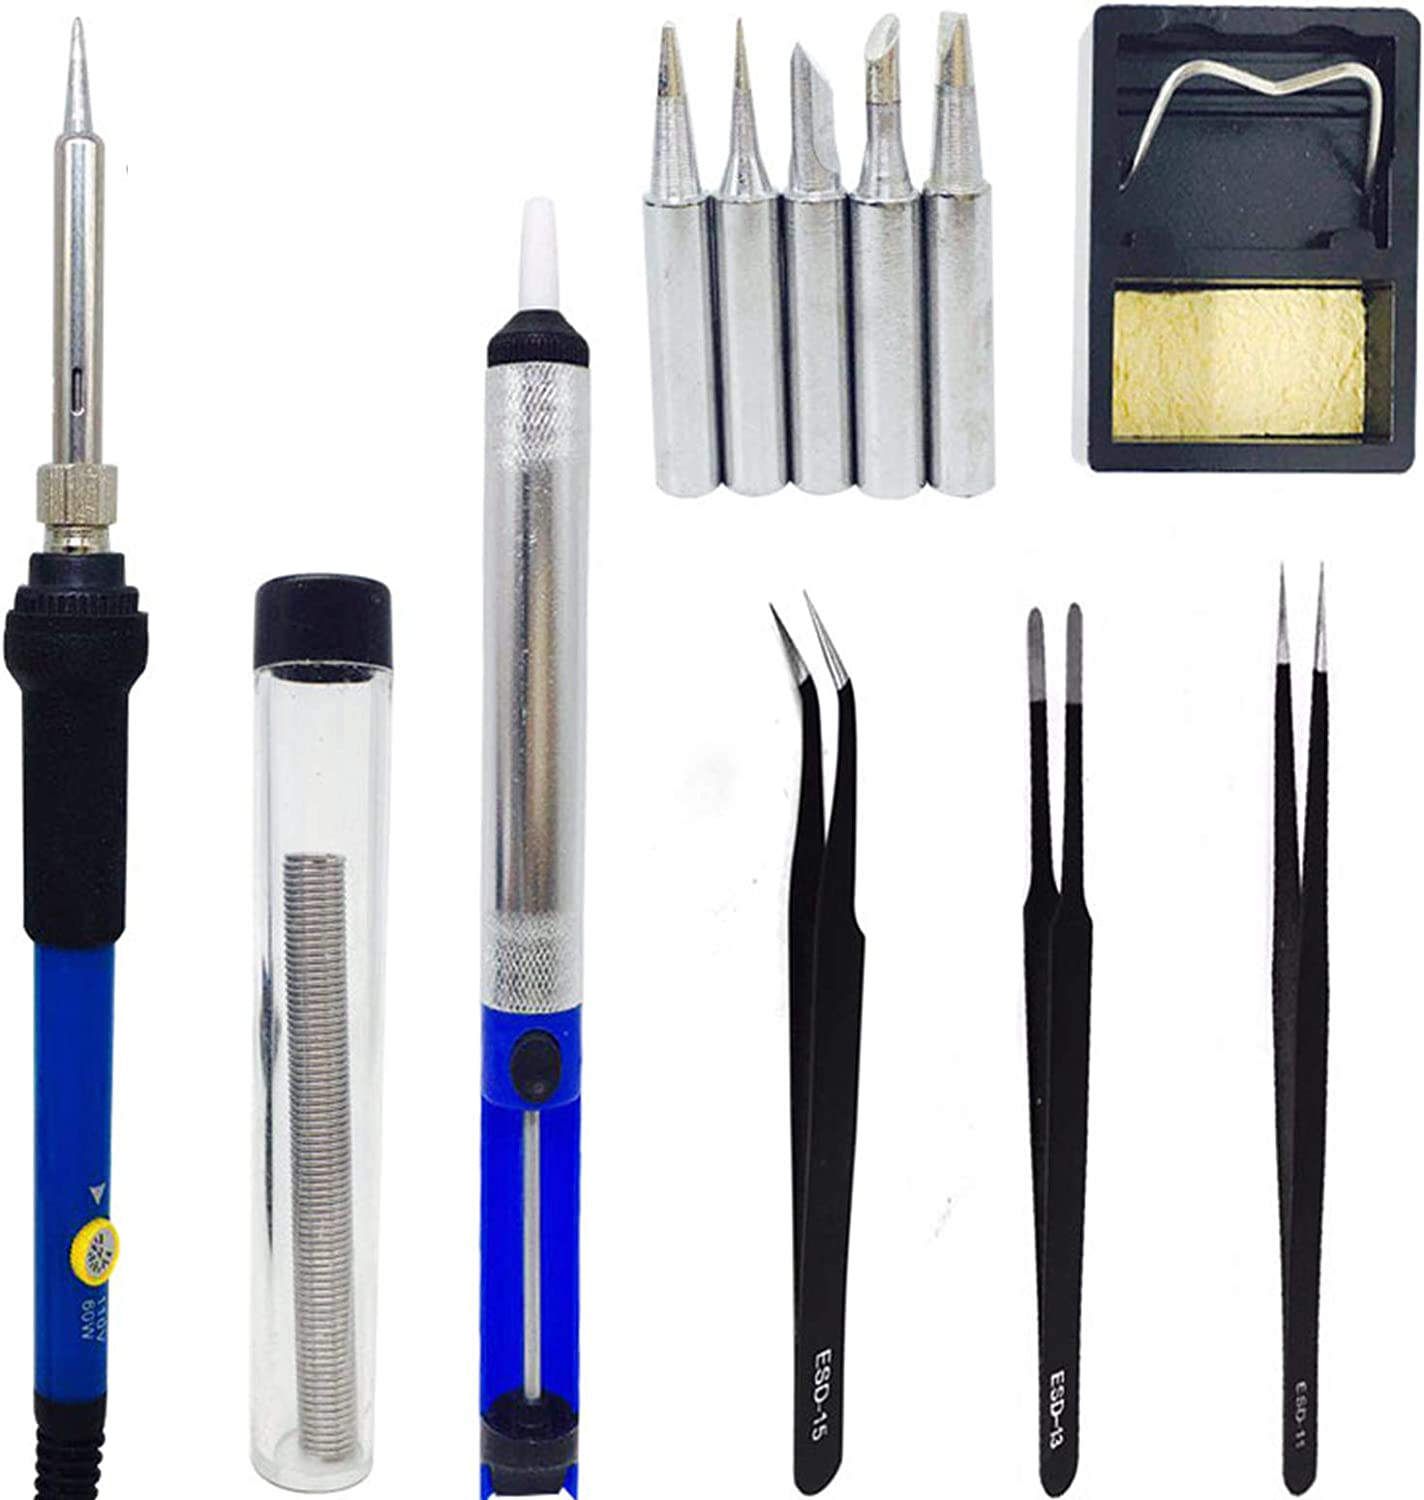 AKEFG Soldering Factory outlet Iron Selling and selling Kit 60W Tools Welding AdjustableTemperature